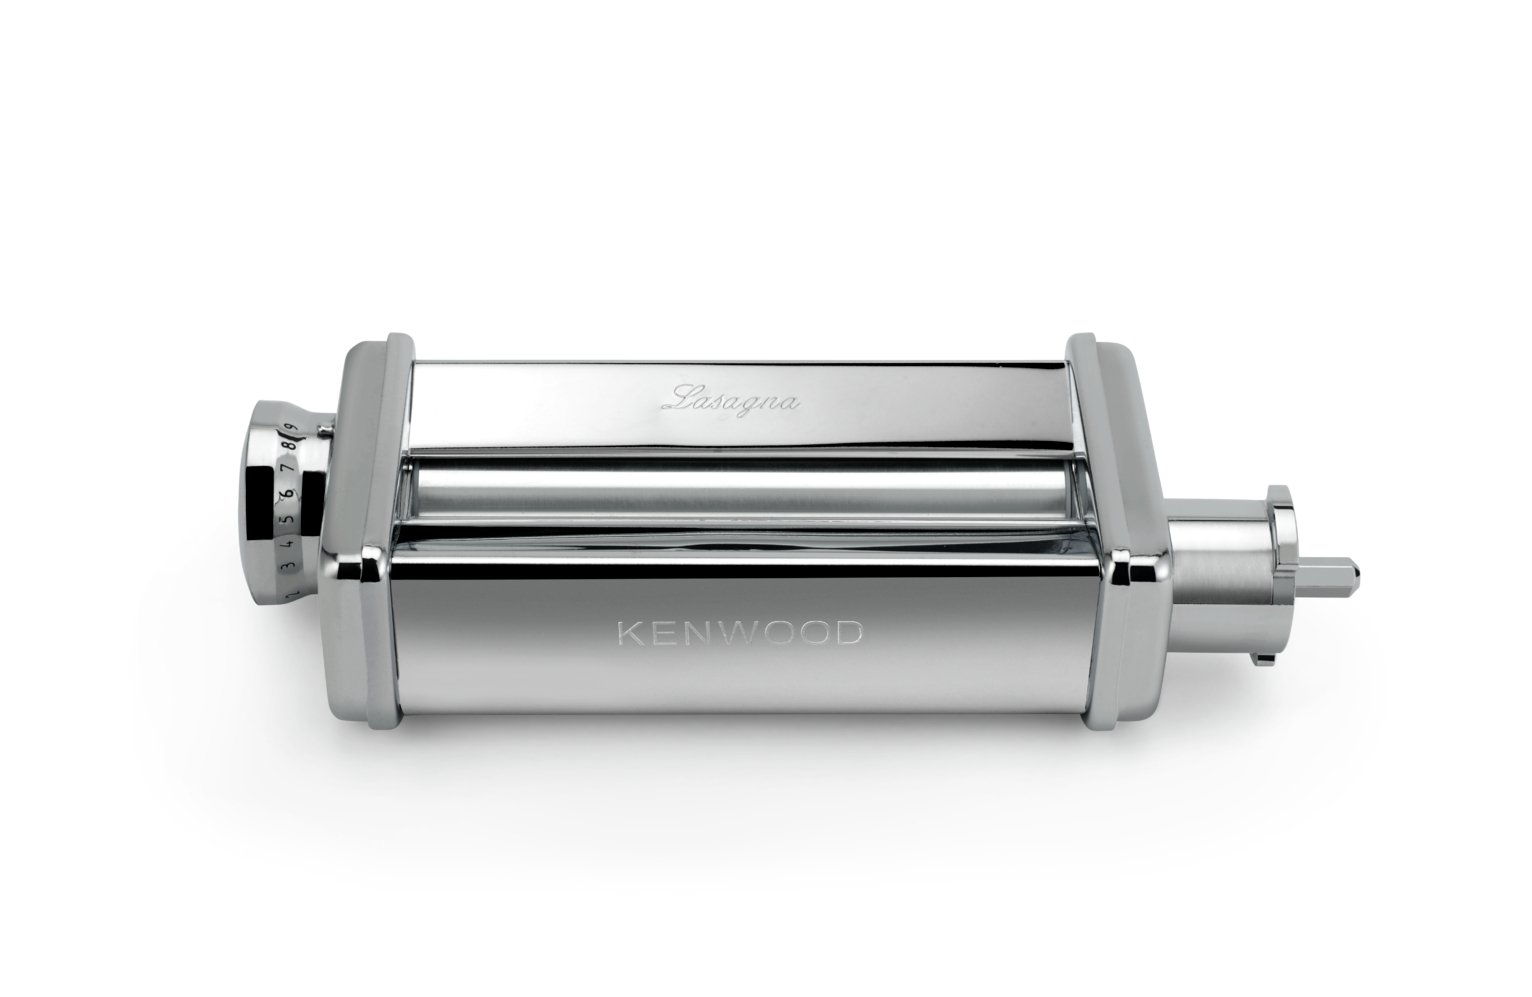 Kenwood KAX97OME Pasta Roller - Stainless Steel